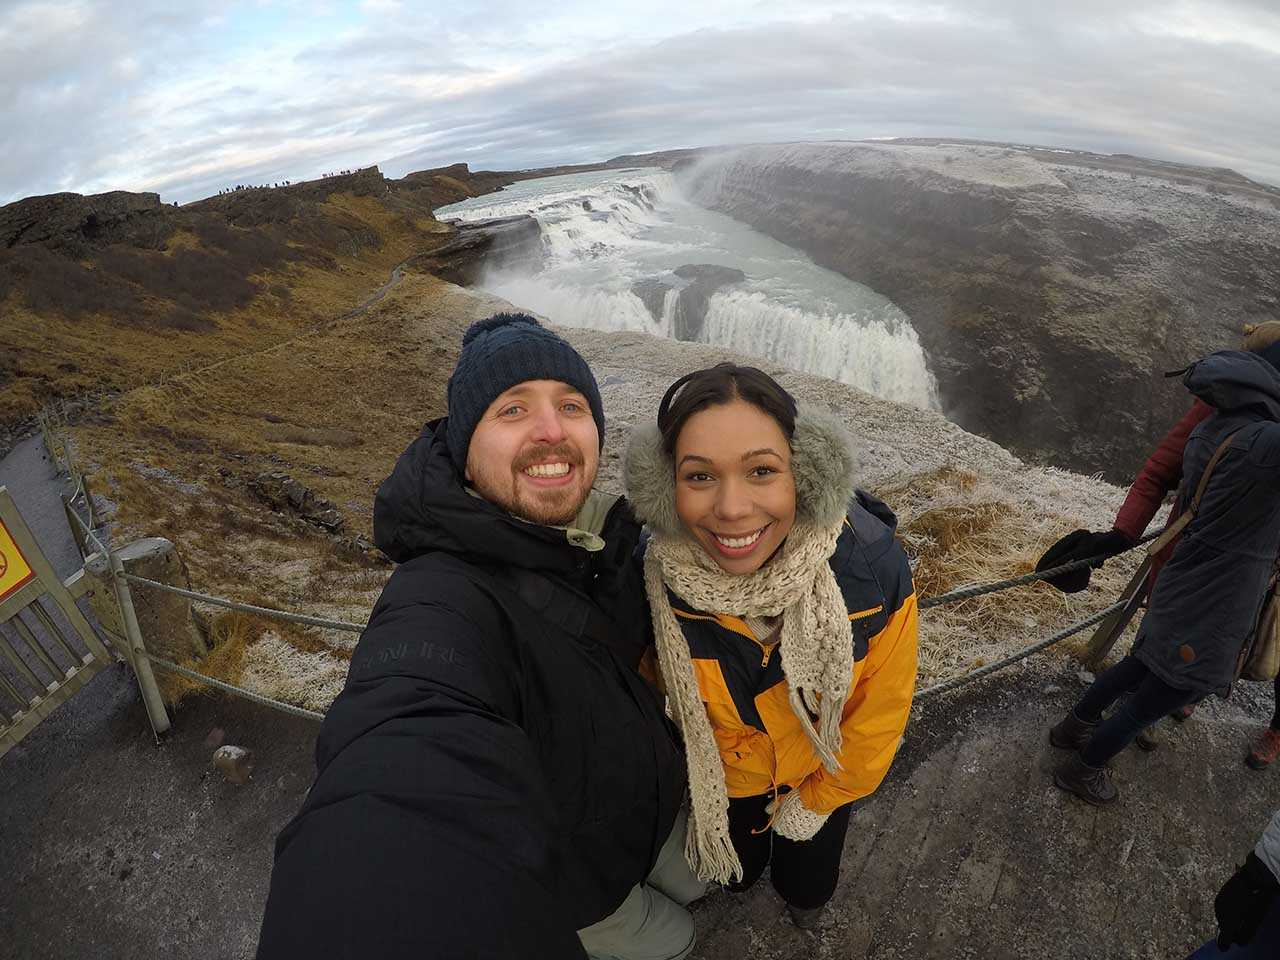 Jade and Kev in Iceland - Two Tall Travellers